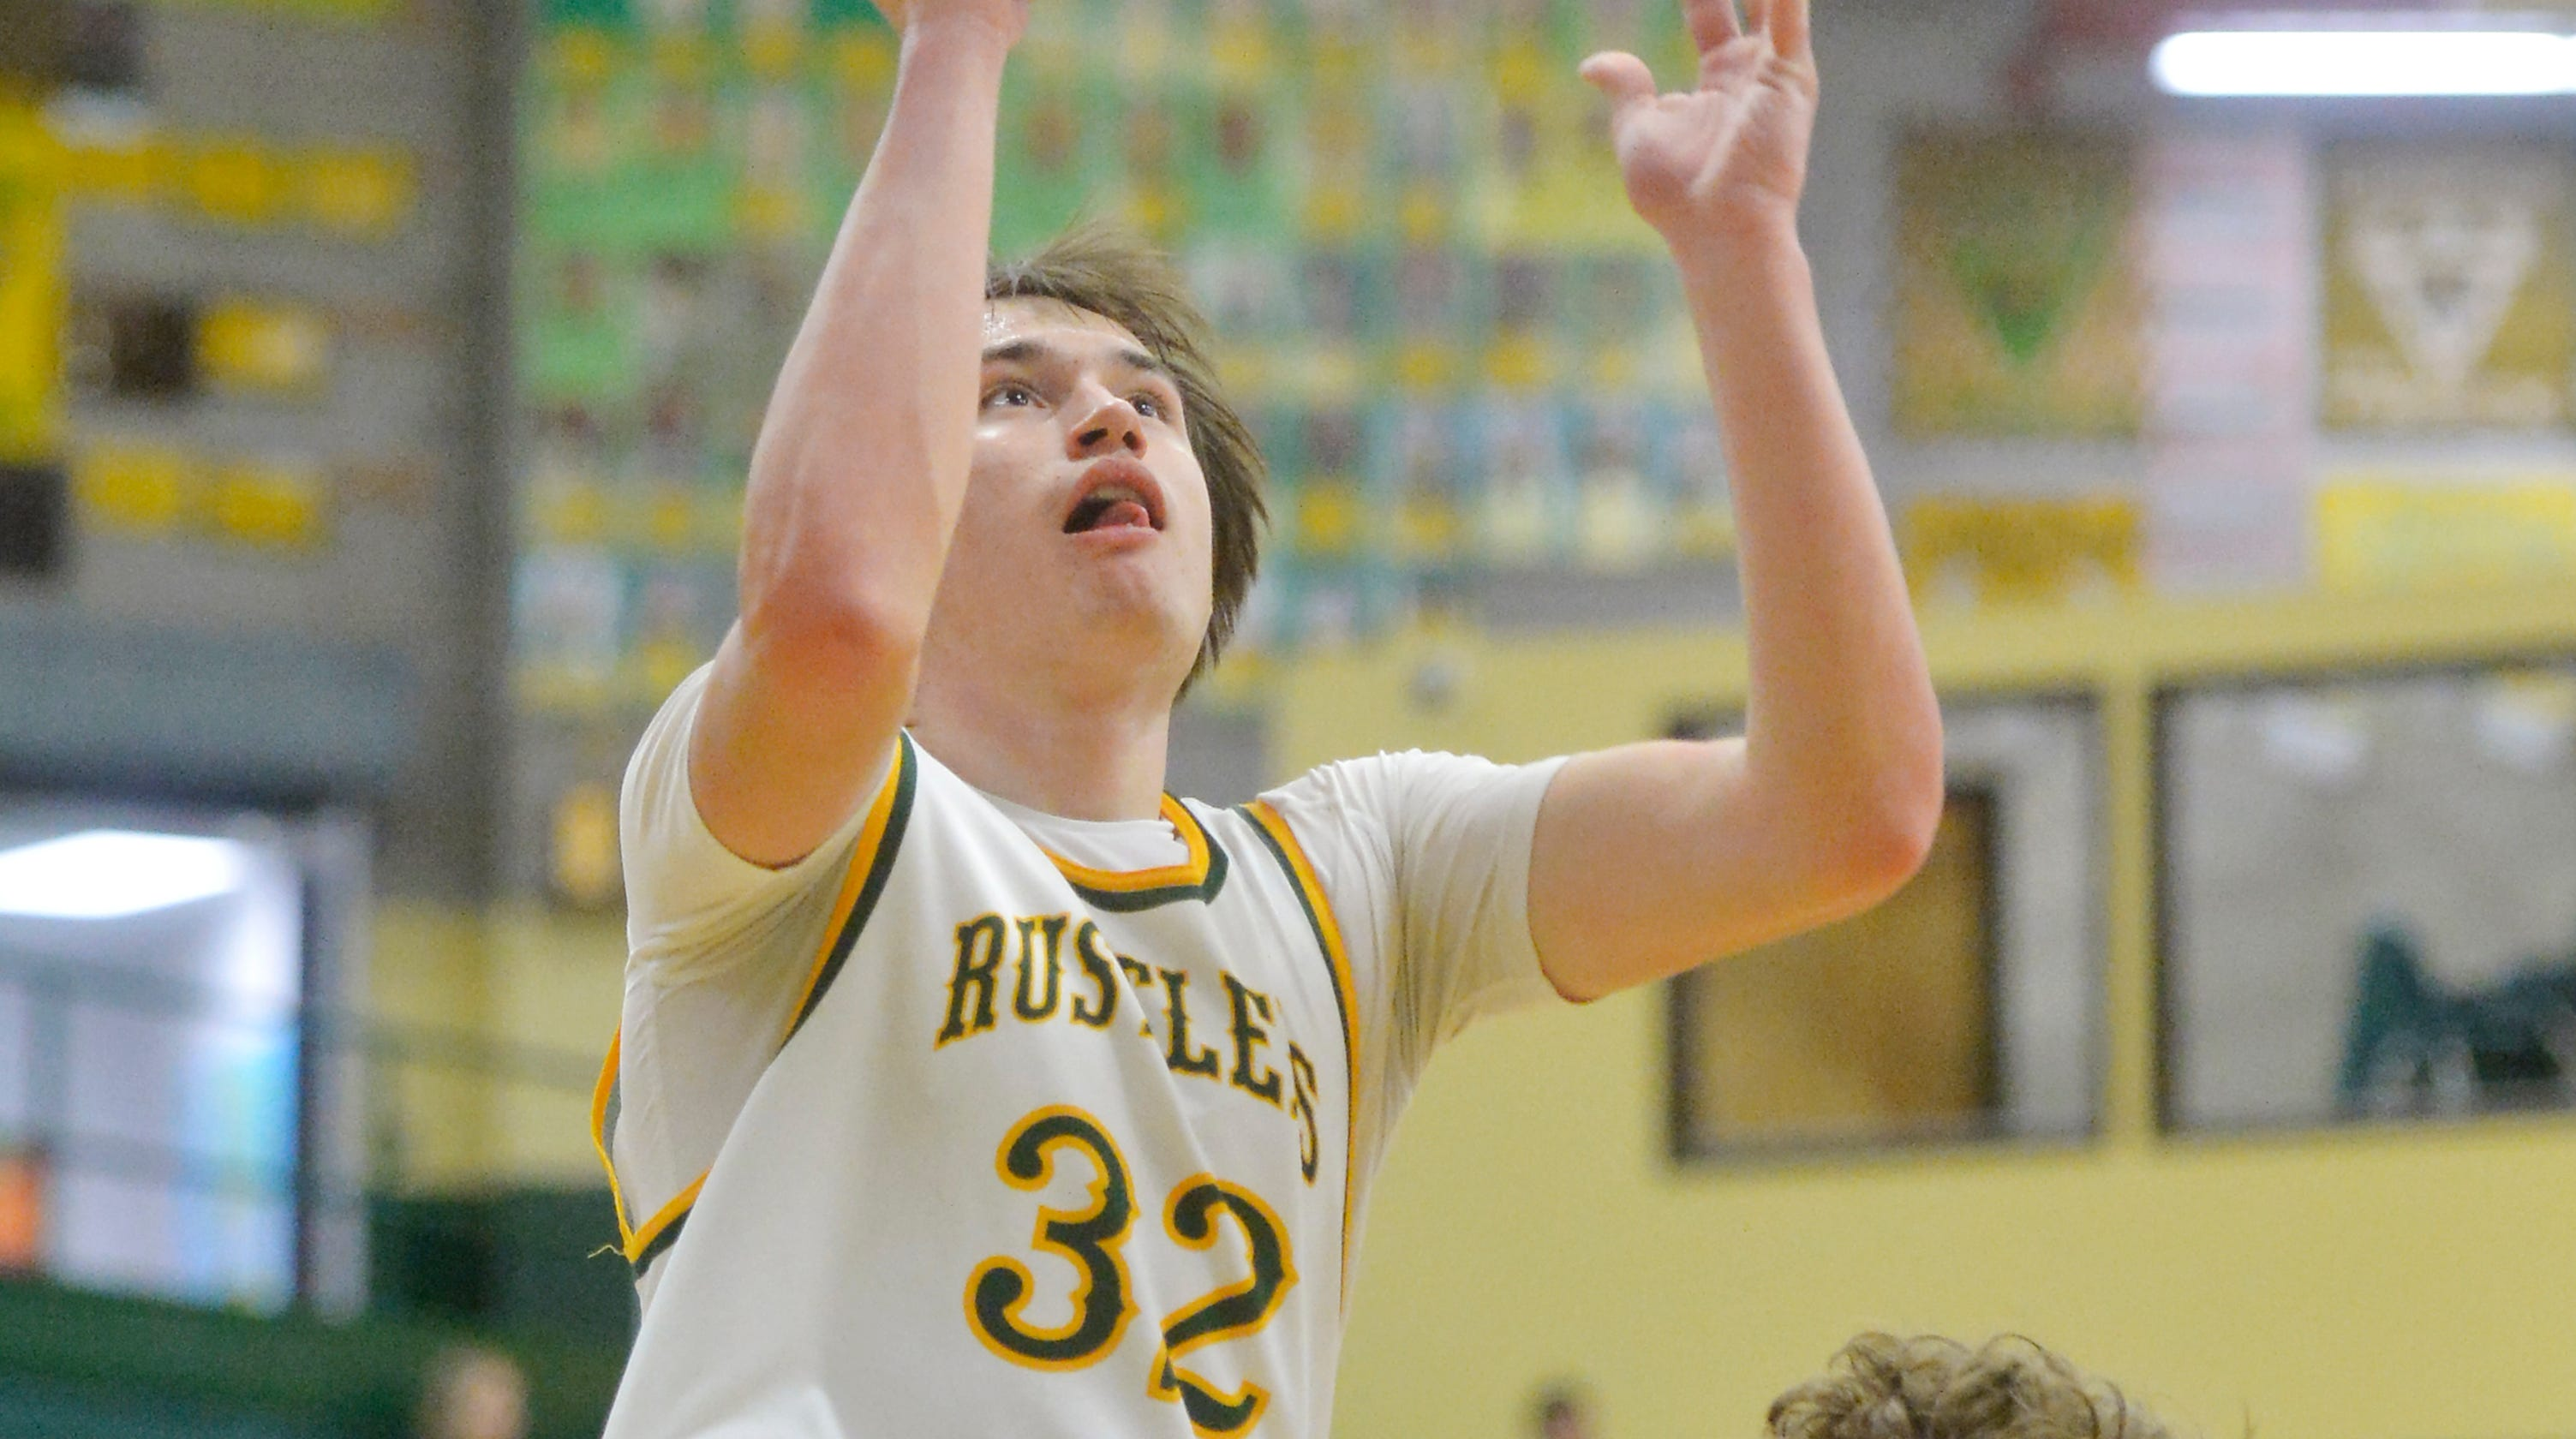 The boys' basketball rivalry in Great Falls continues Thursday night at CMR Fieldhouse